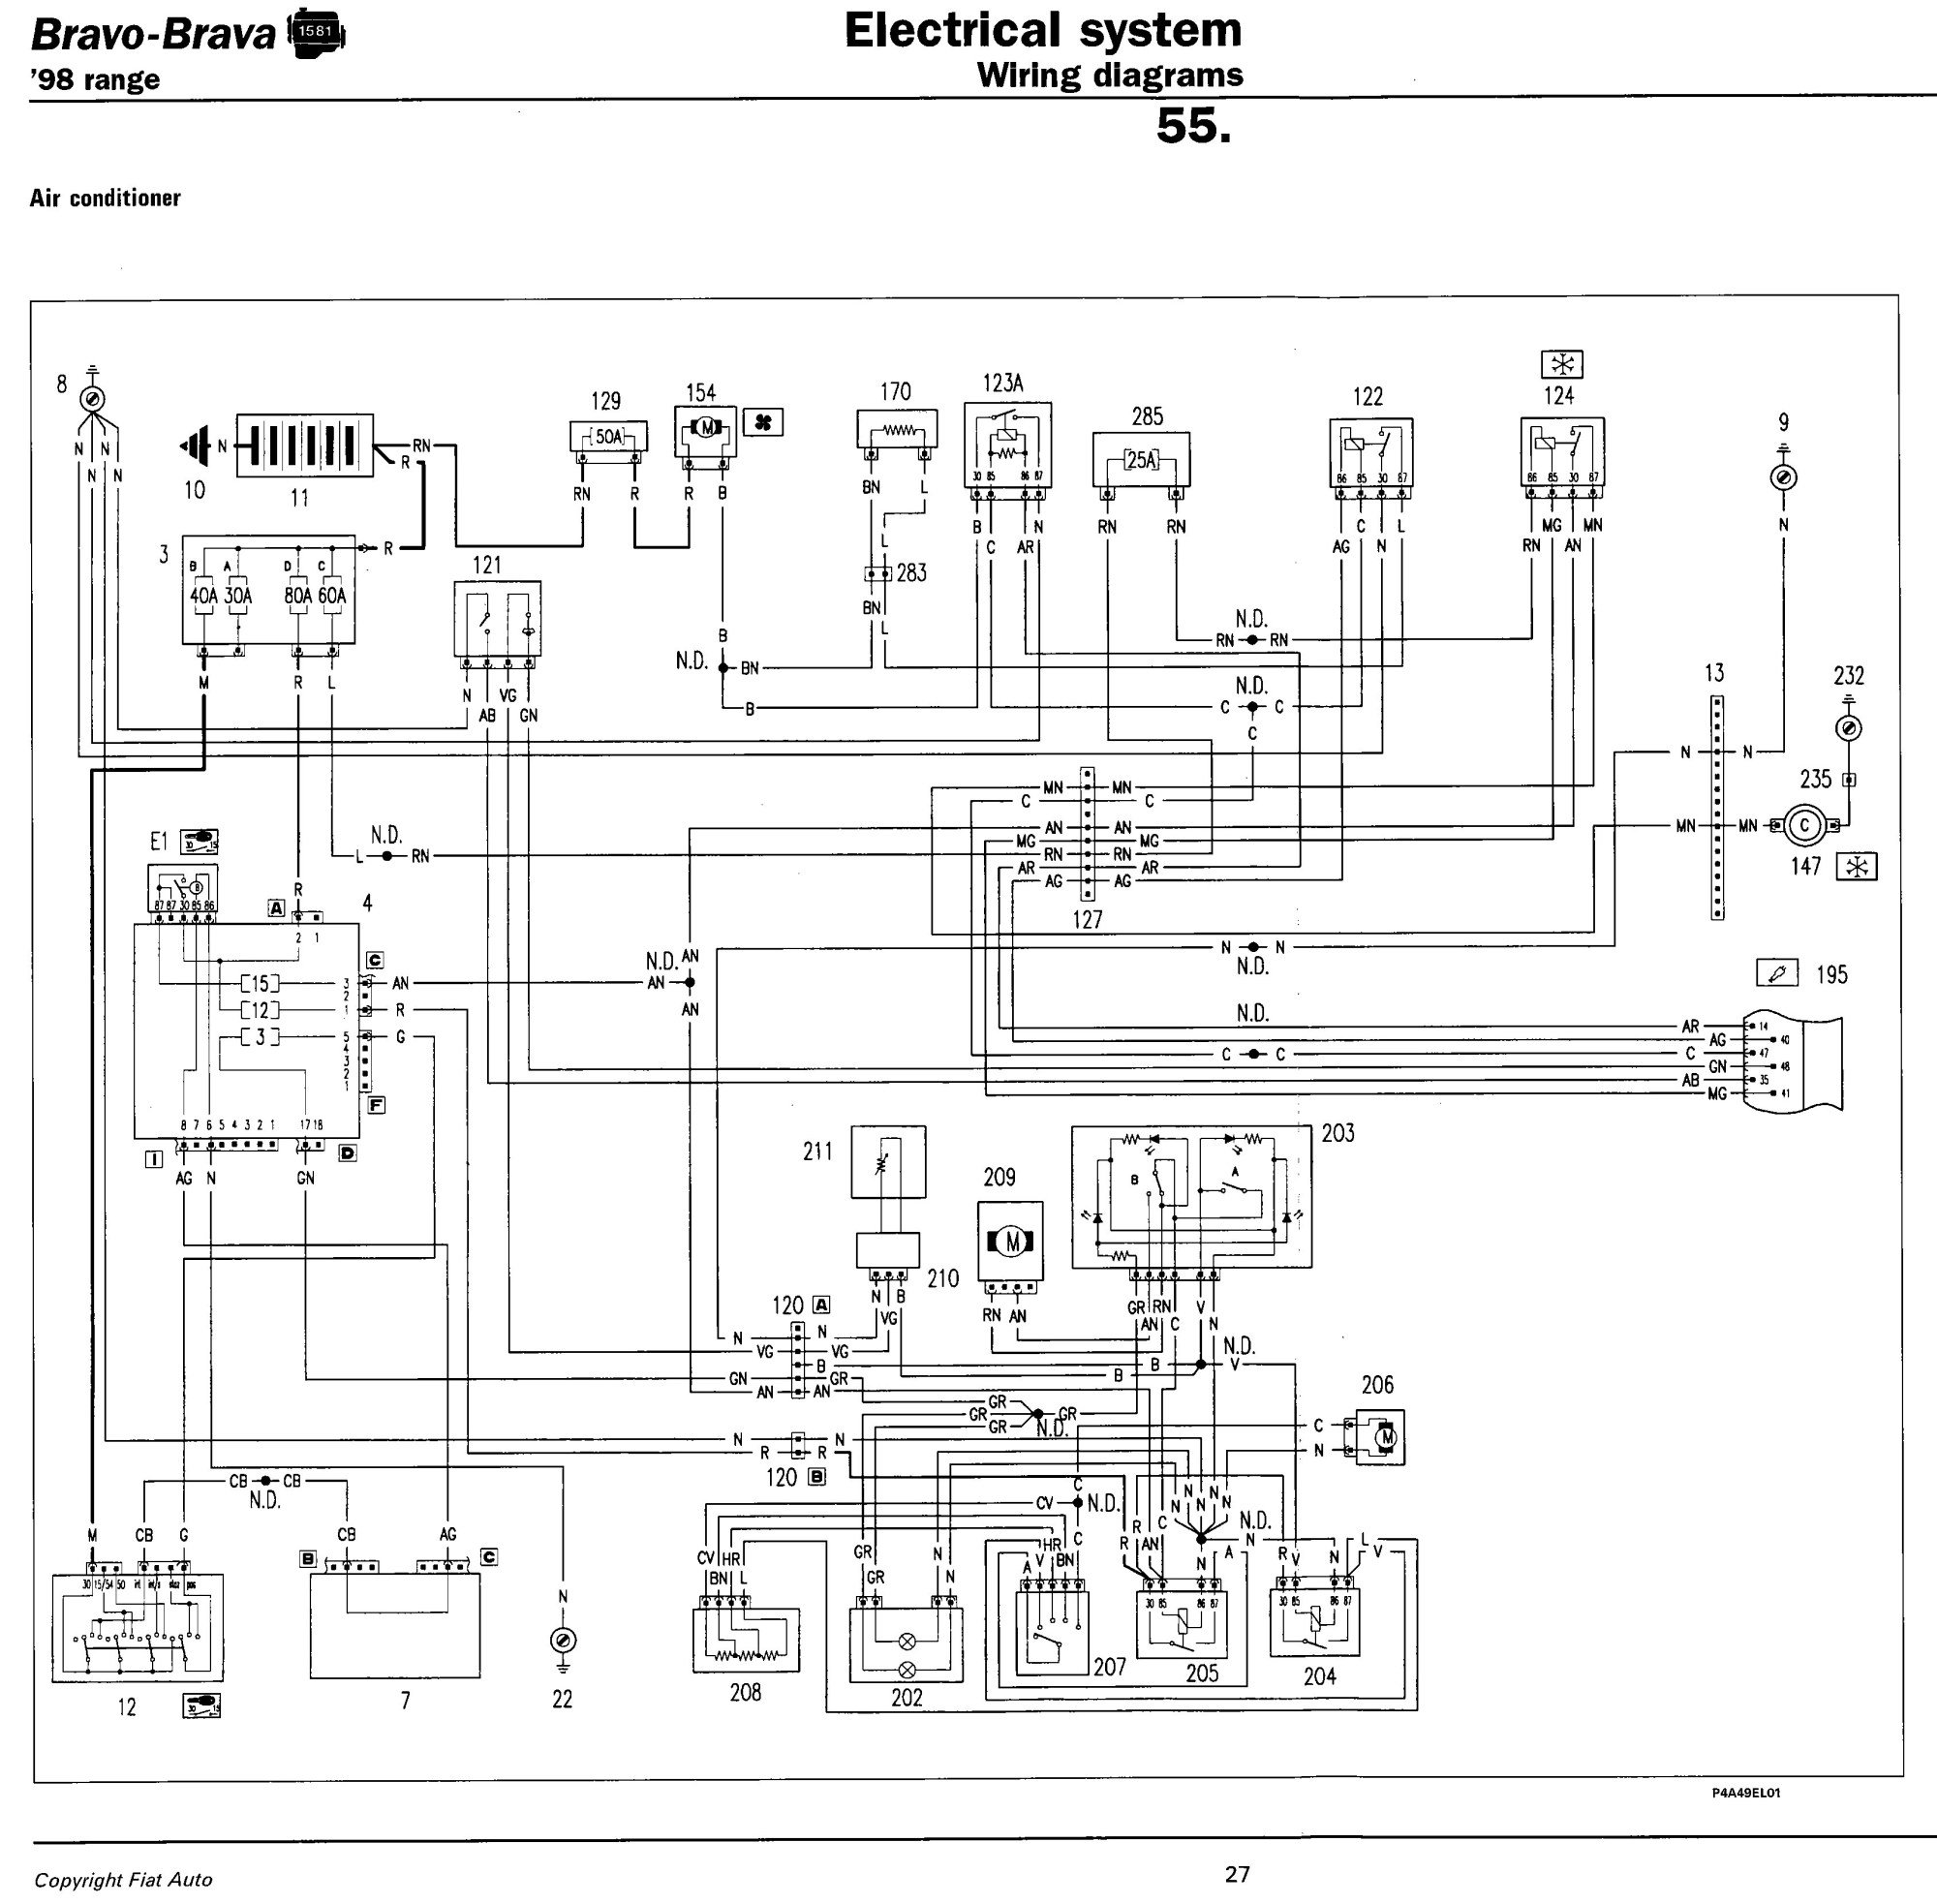 hight resolution of fiat doblo cargo wiring diagram wiring library rh 55 evitta de 3 wire alternator wiring diagram